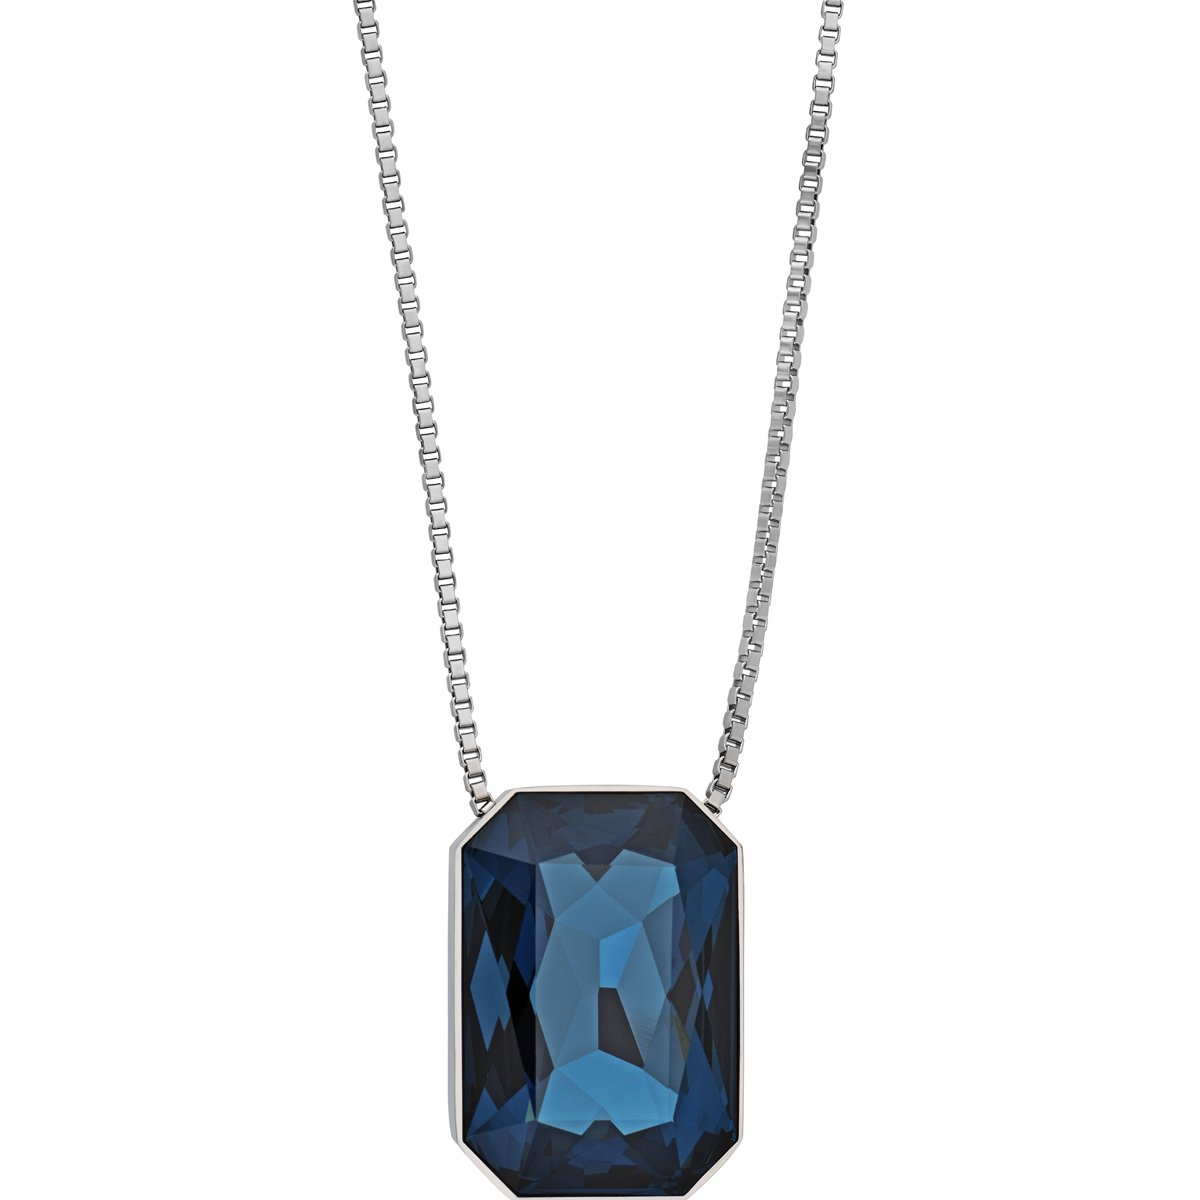 Swarovski If Verso 5092842 Ruthenium Plated Necklace w/Interchangeable Crystals